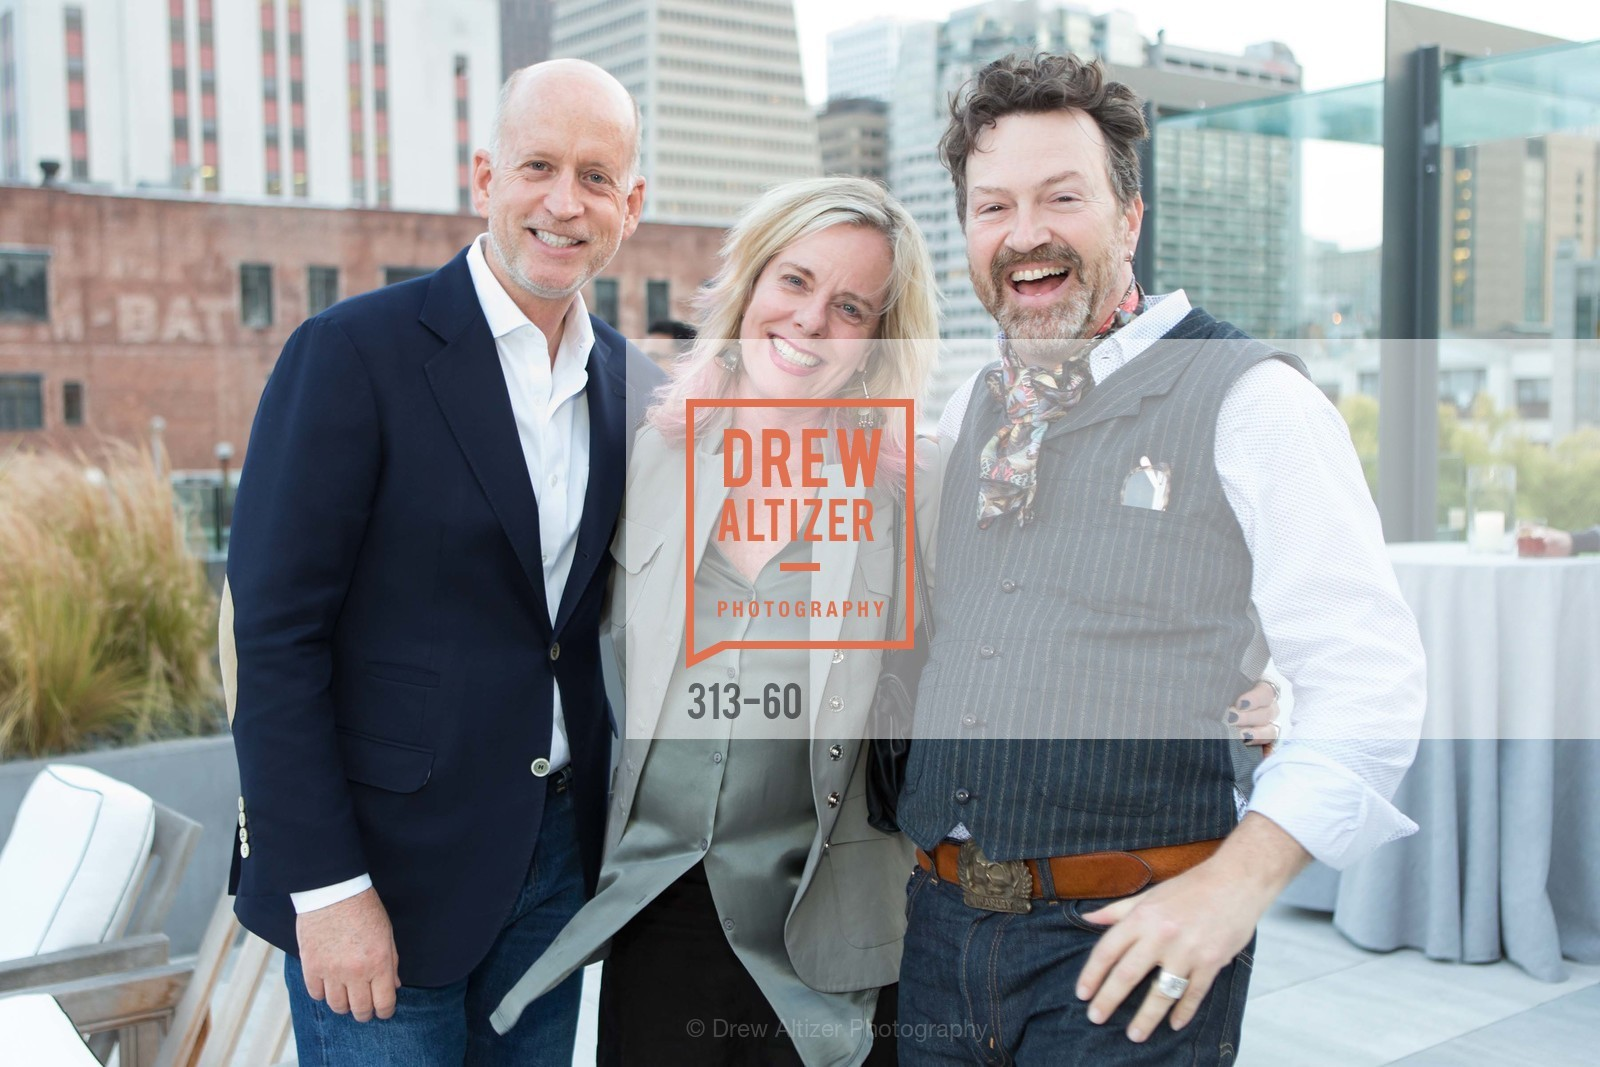 Gus Wallbolt, Susan McLaughlin, Paul D'Orleans, MR PORTER Celebrate The San Francisco Issue of The Journal, The Battery Rooftop - The Battery SF, April 23rd, 2015,Drew Altizer, Drew Altizer Photography, full-service agency, private events, San Francisco photographer, photographer california